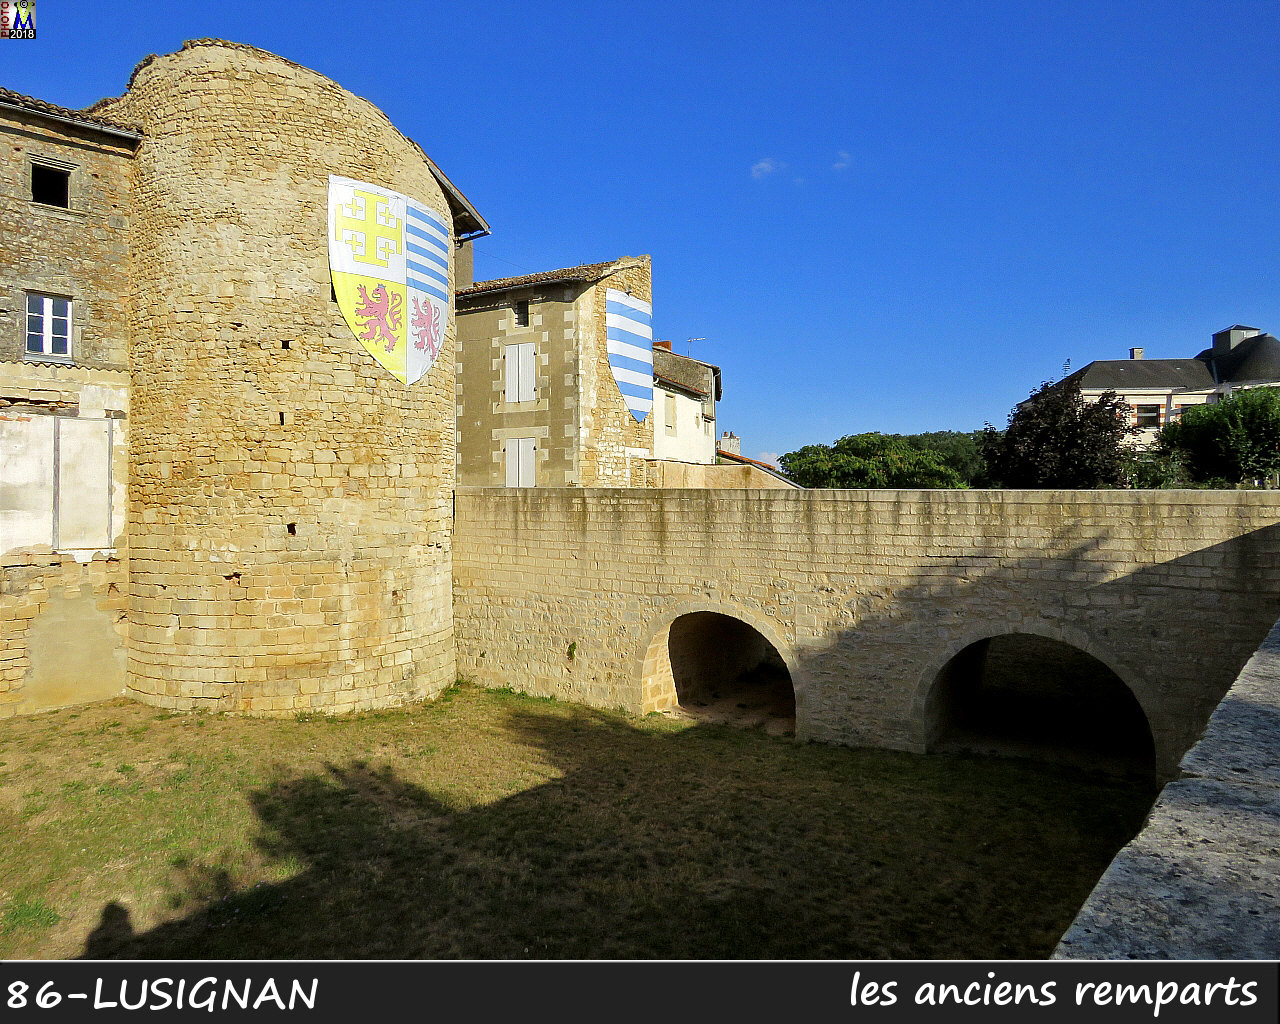 86LUSIGNAN_remparts_1002.jpg